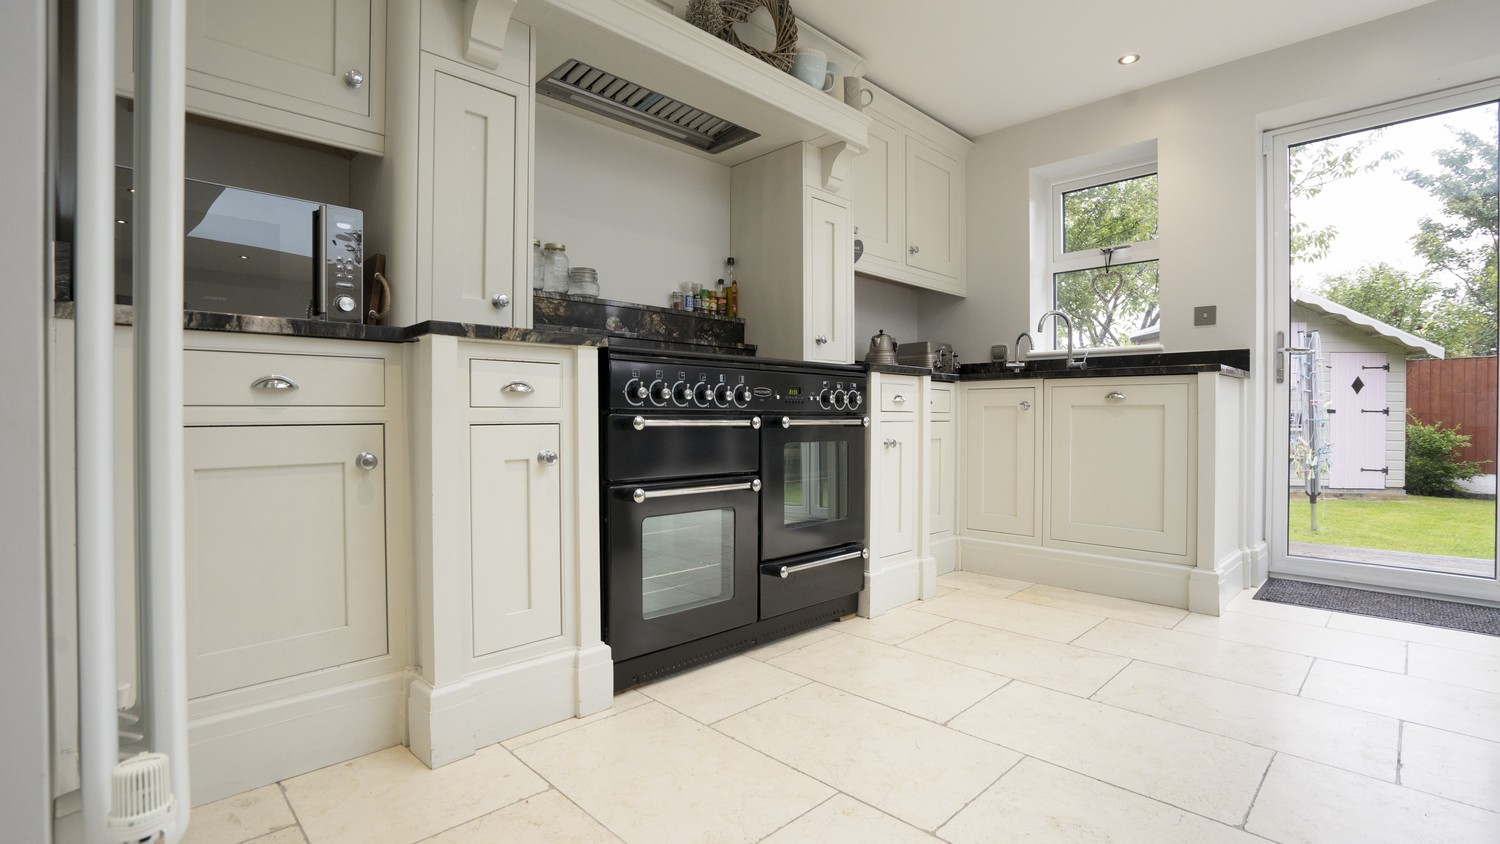 Off White timber In-Frame kitchen cupboards with black granite worktops and feature timber mantel. Large double oven and gas hob for cooking, Installation Aintree, Liverpool.